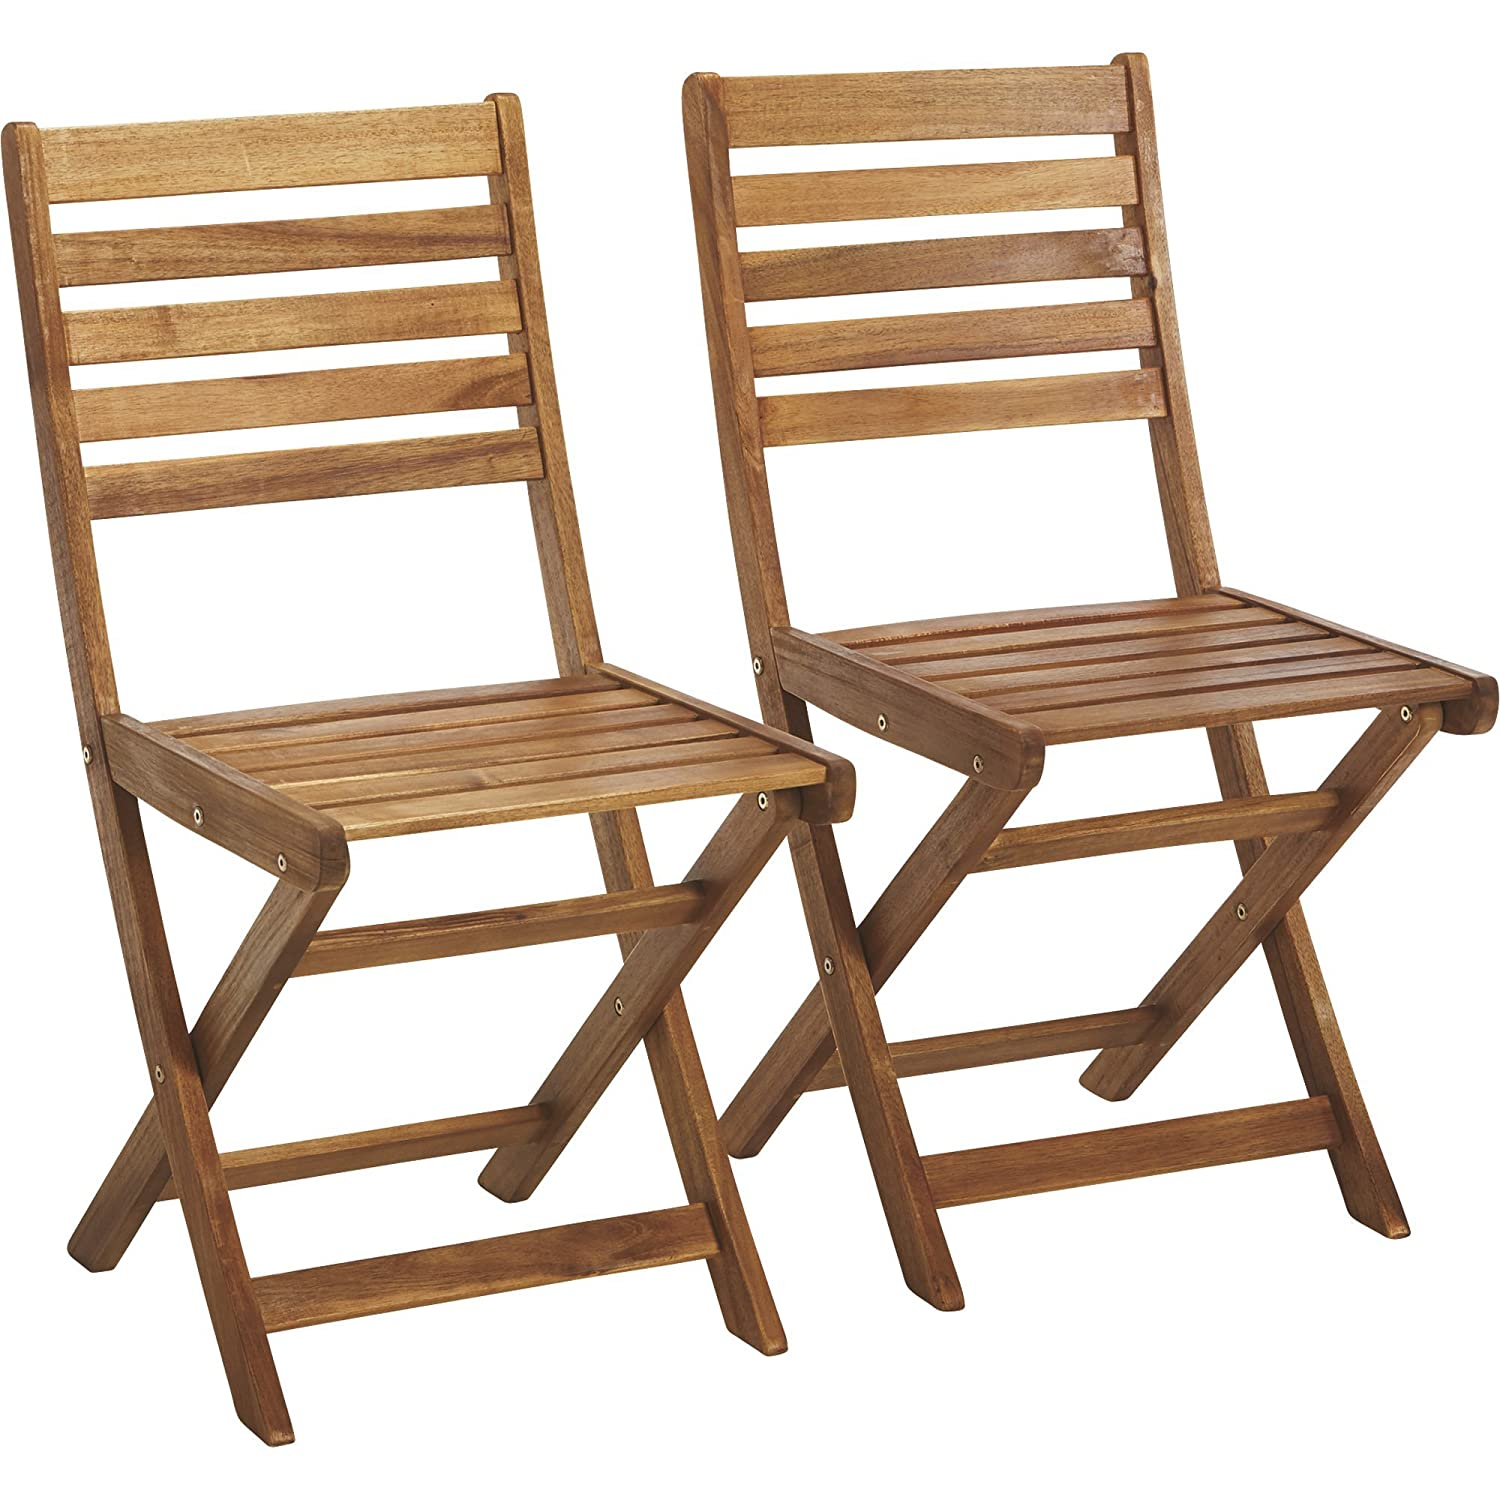 Amazon.com: 2-PC. Silla de madera de acacia plegable Set ...